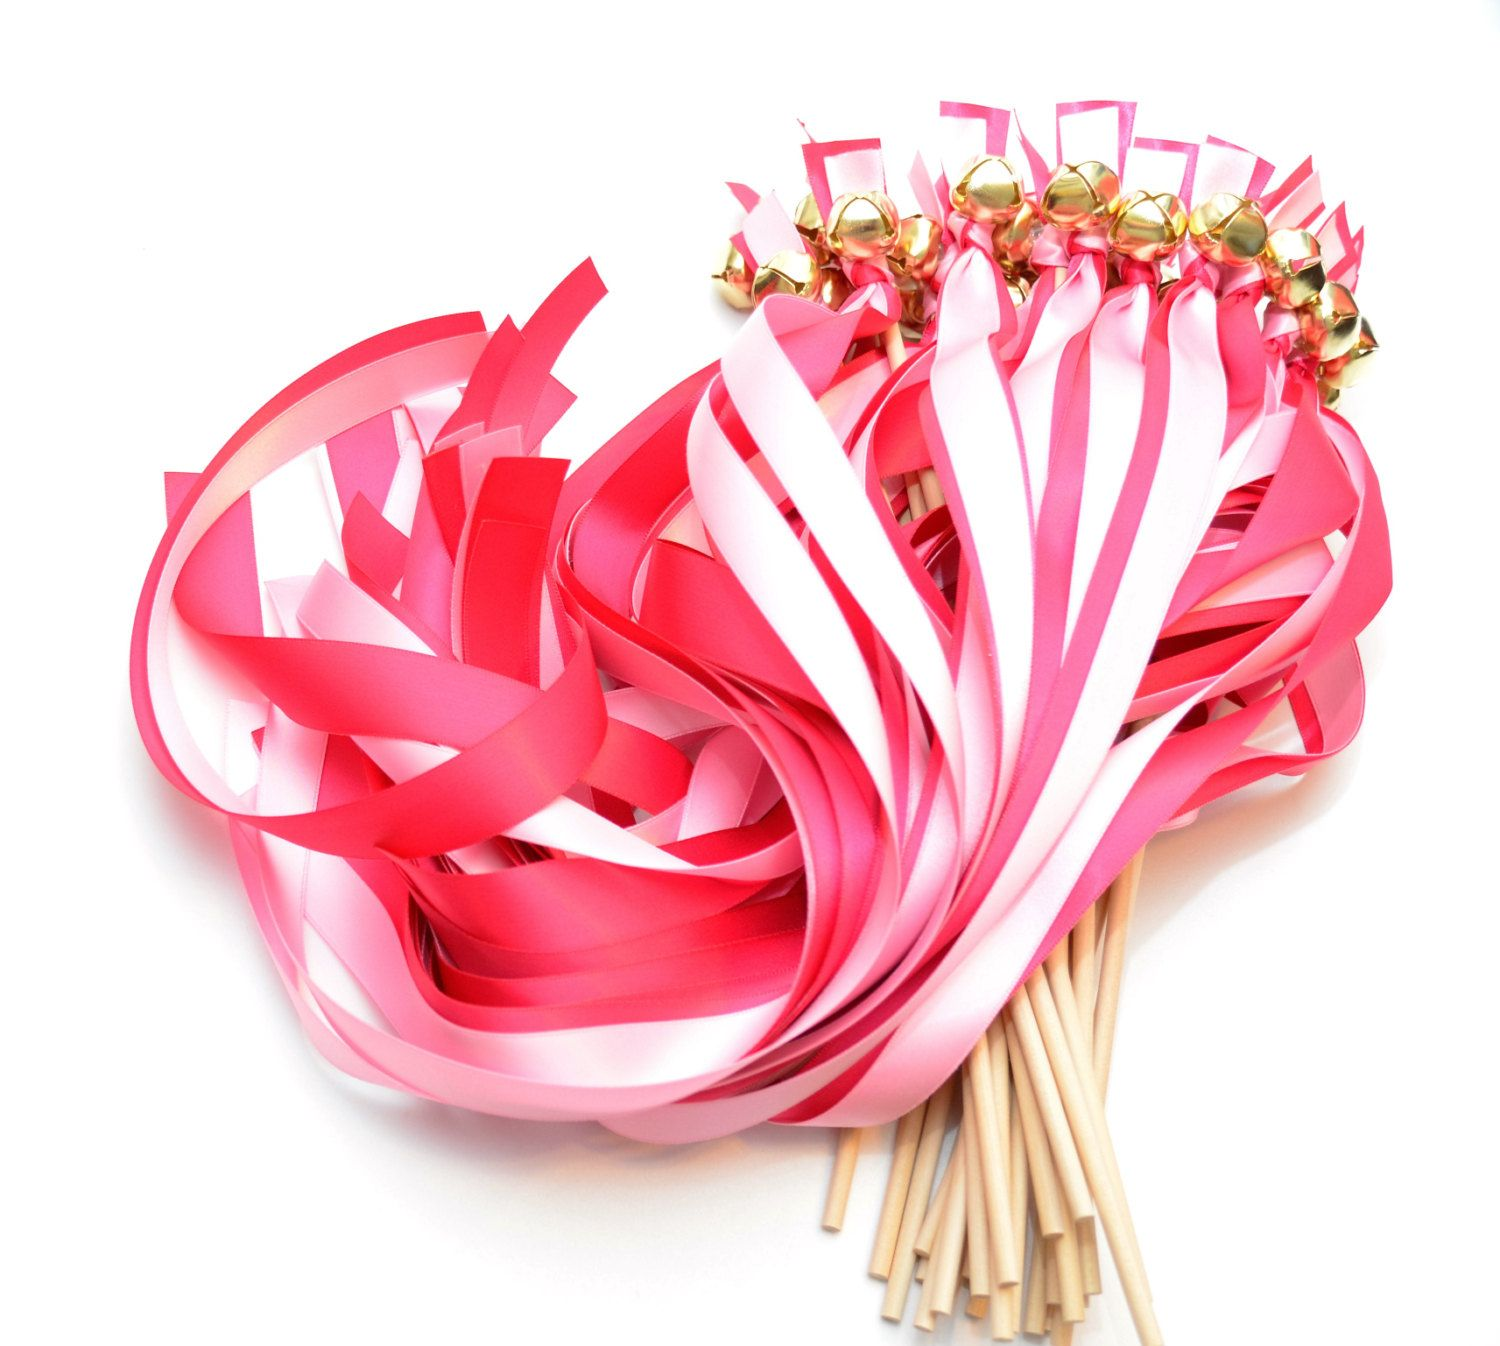 New Hairstyle For Wedding Ceremony: 100 Wedding Wands With Bells